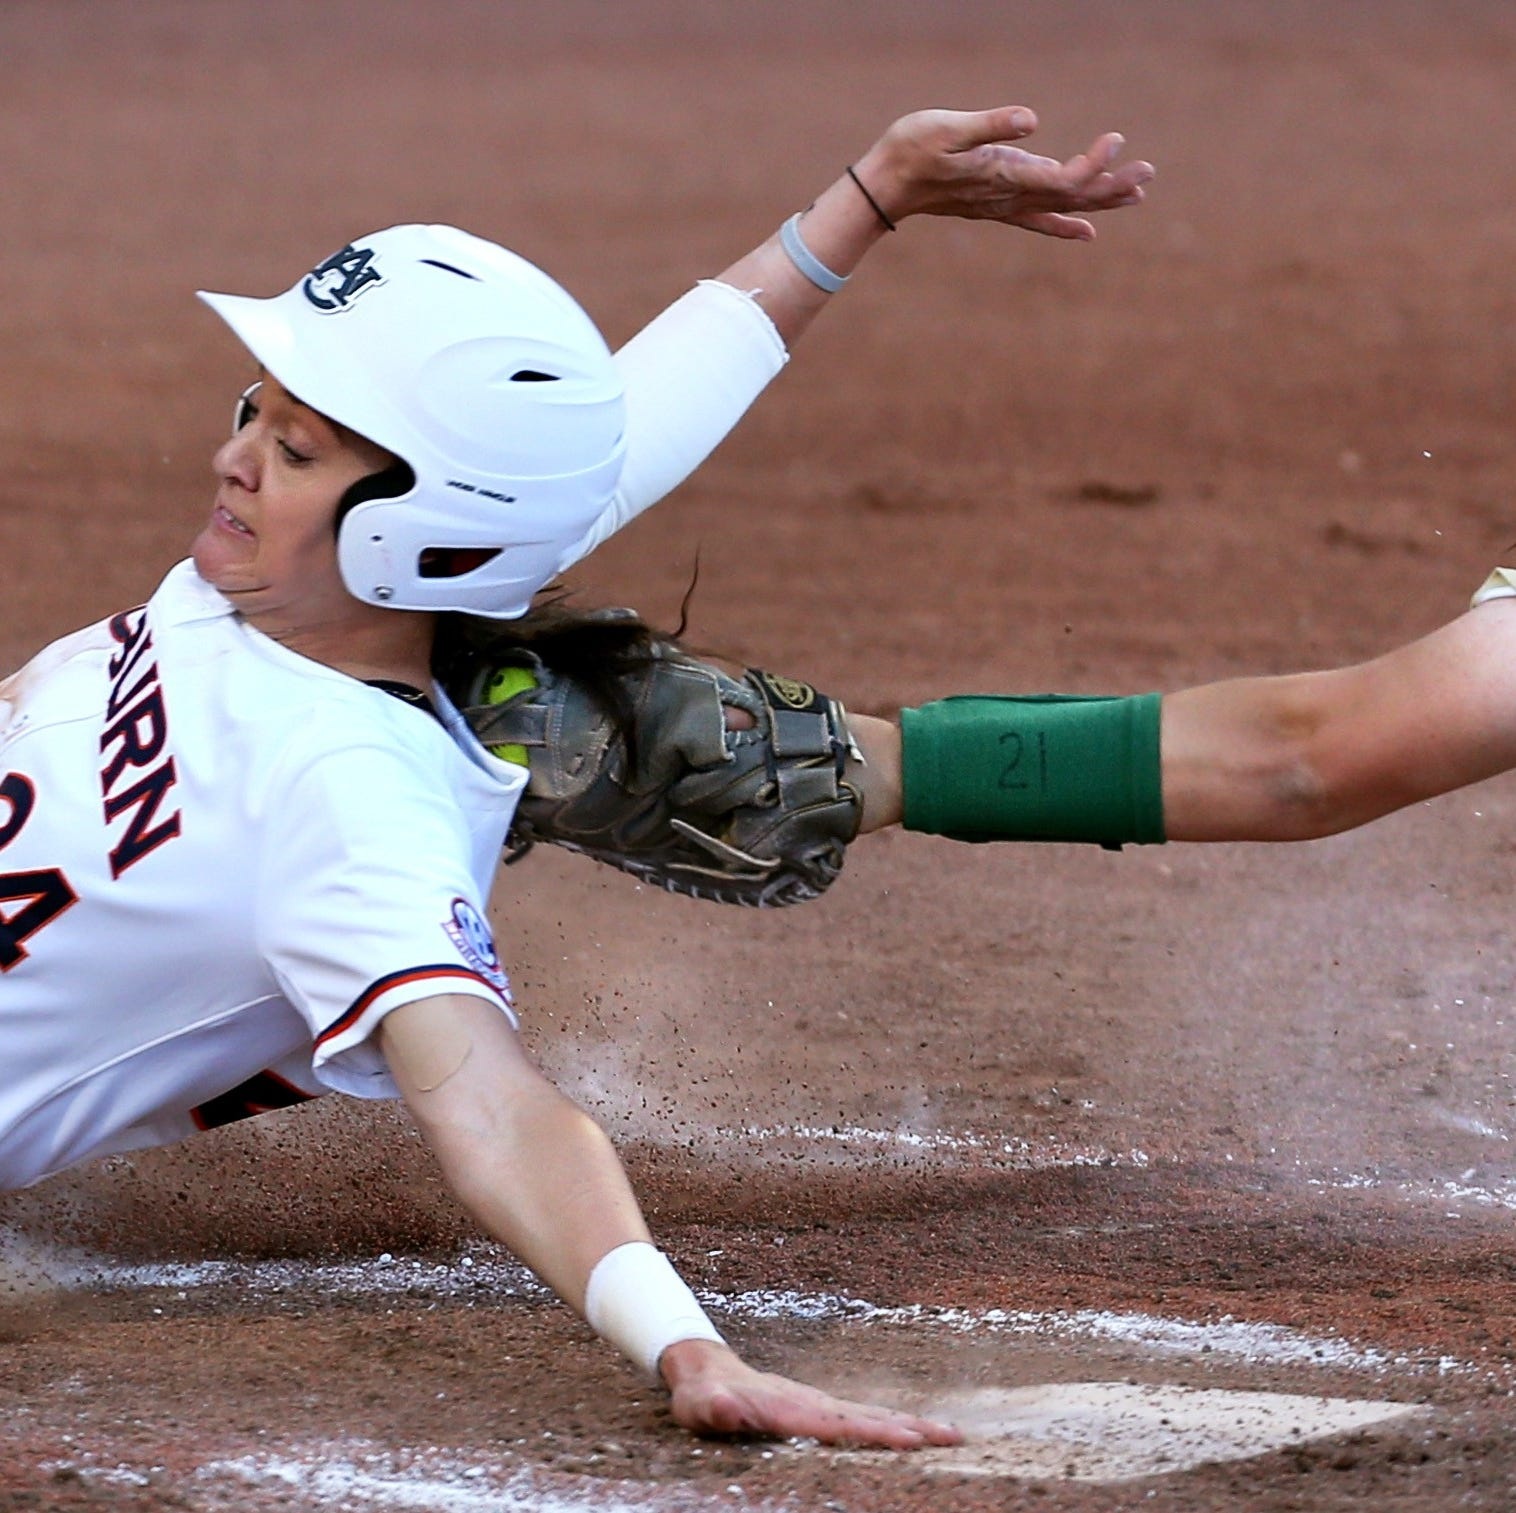 Colorado State softball falls to Auburn in NCAA regional opener